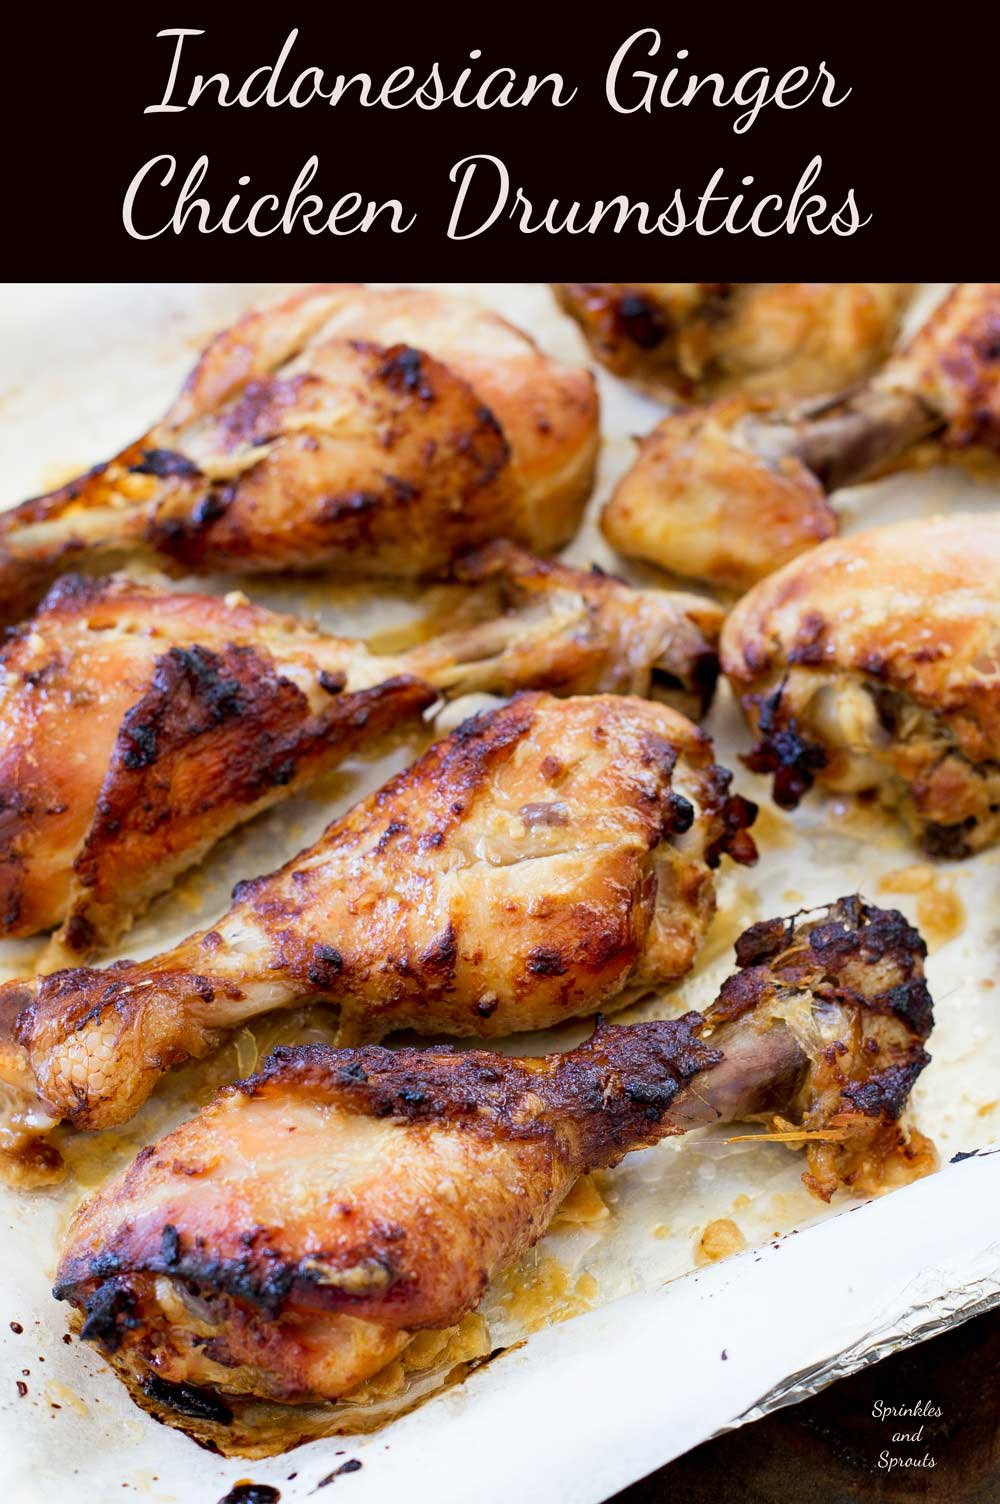 Chicken drumsticks marinated in a rich gingery glaze and then grilled to a slightly charred perfection. Served hot or cold these drumsticks are a great way to feed a crowd.